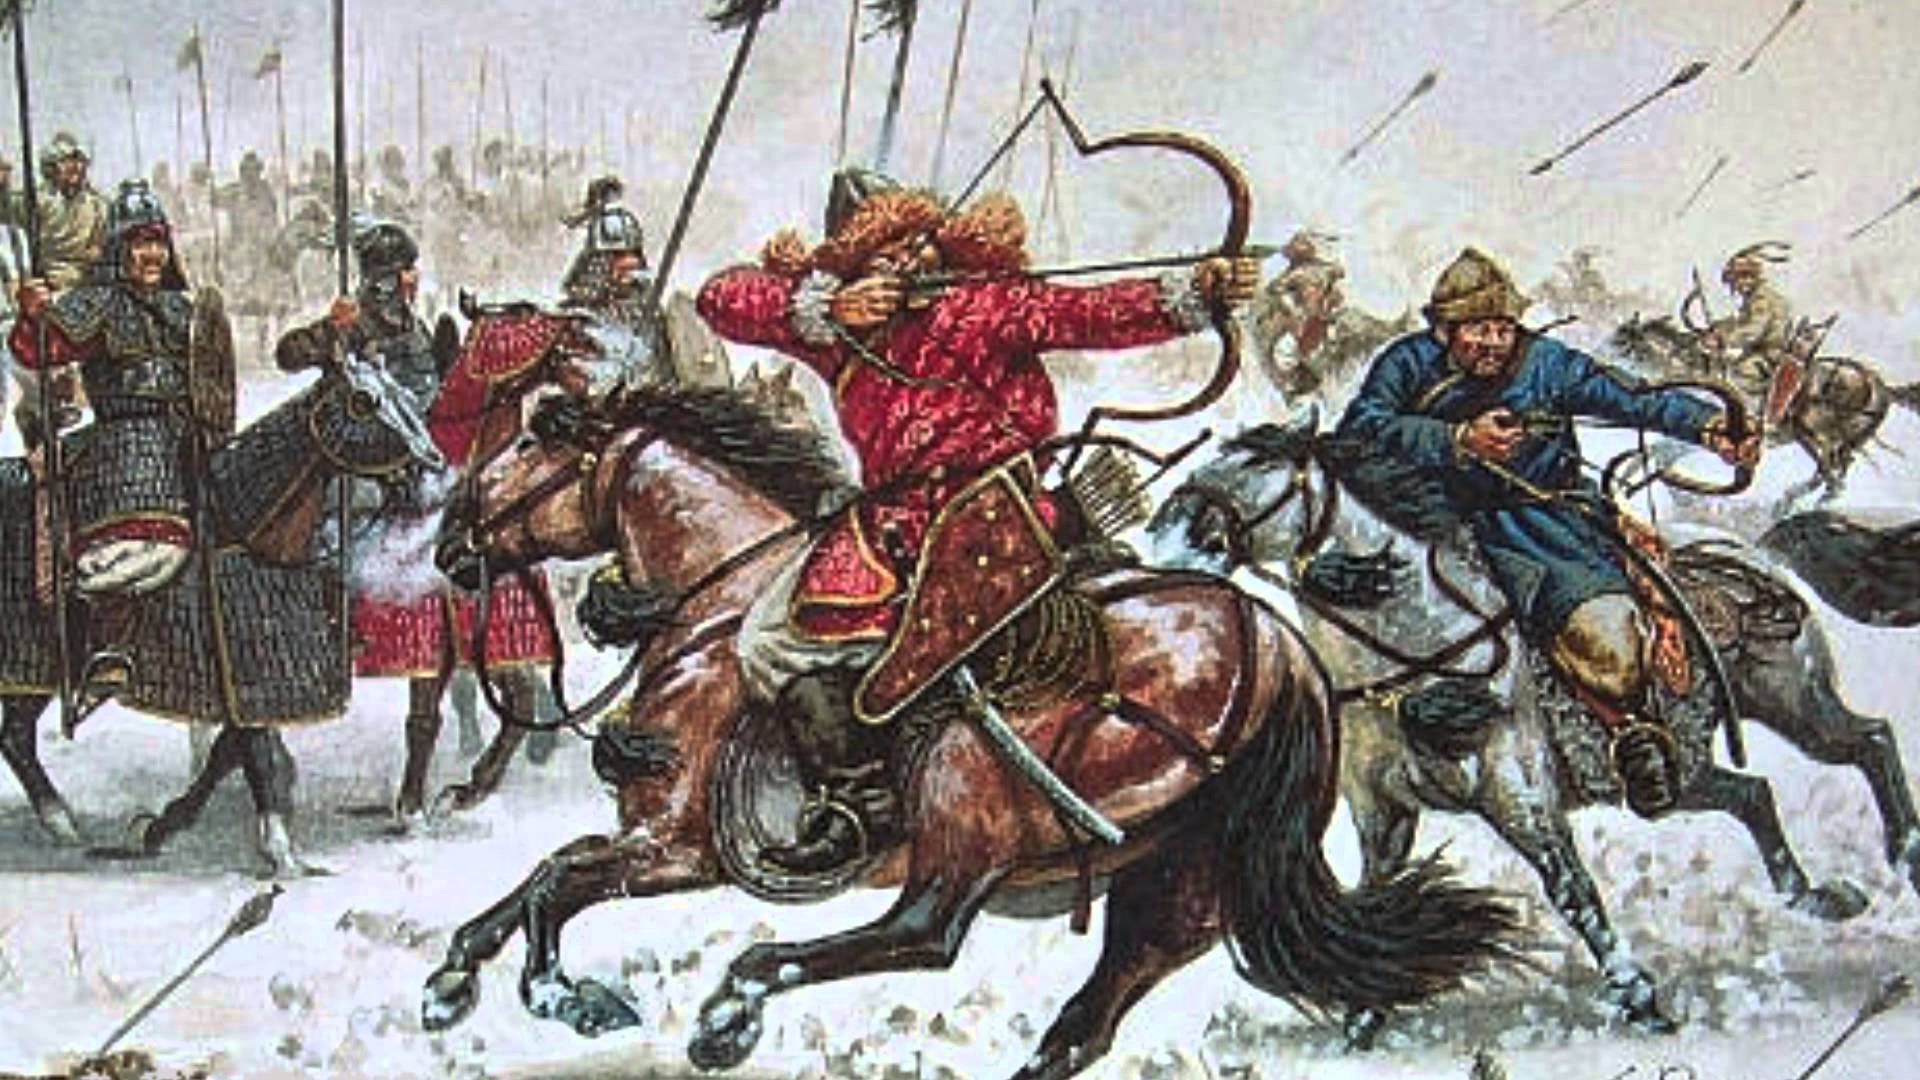 mongol empire and mongols mongol invaders The mongol empire emerged from the unification of several nomadic tribes in the mongol homeland under the leadership of genghis khan, whom a council proclaimed ruler of all the mongols in 1206 the empire grew rapidly under his rule and that of his descendants, who sent invasions in every direction.